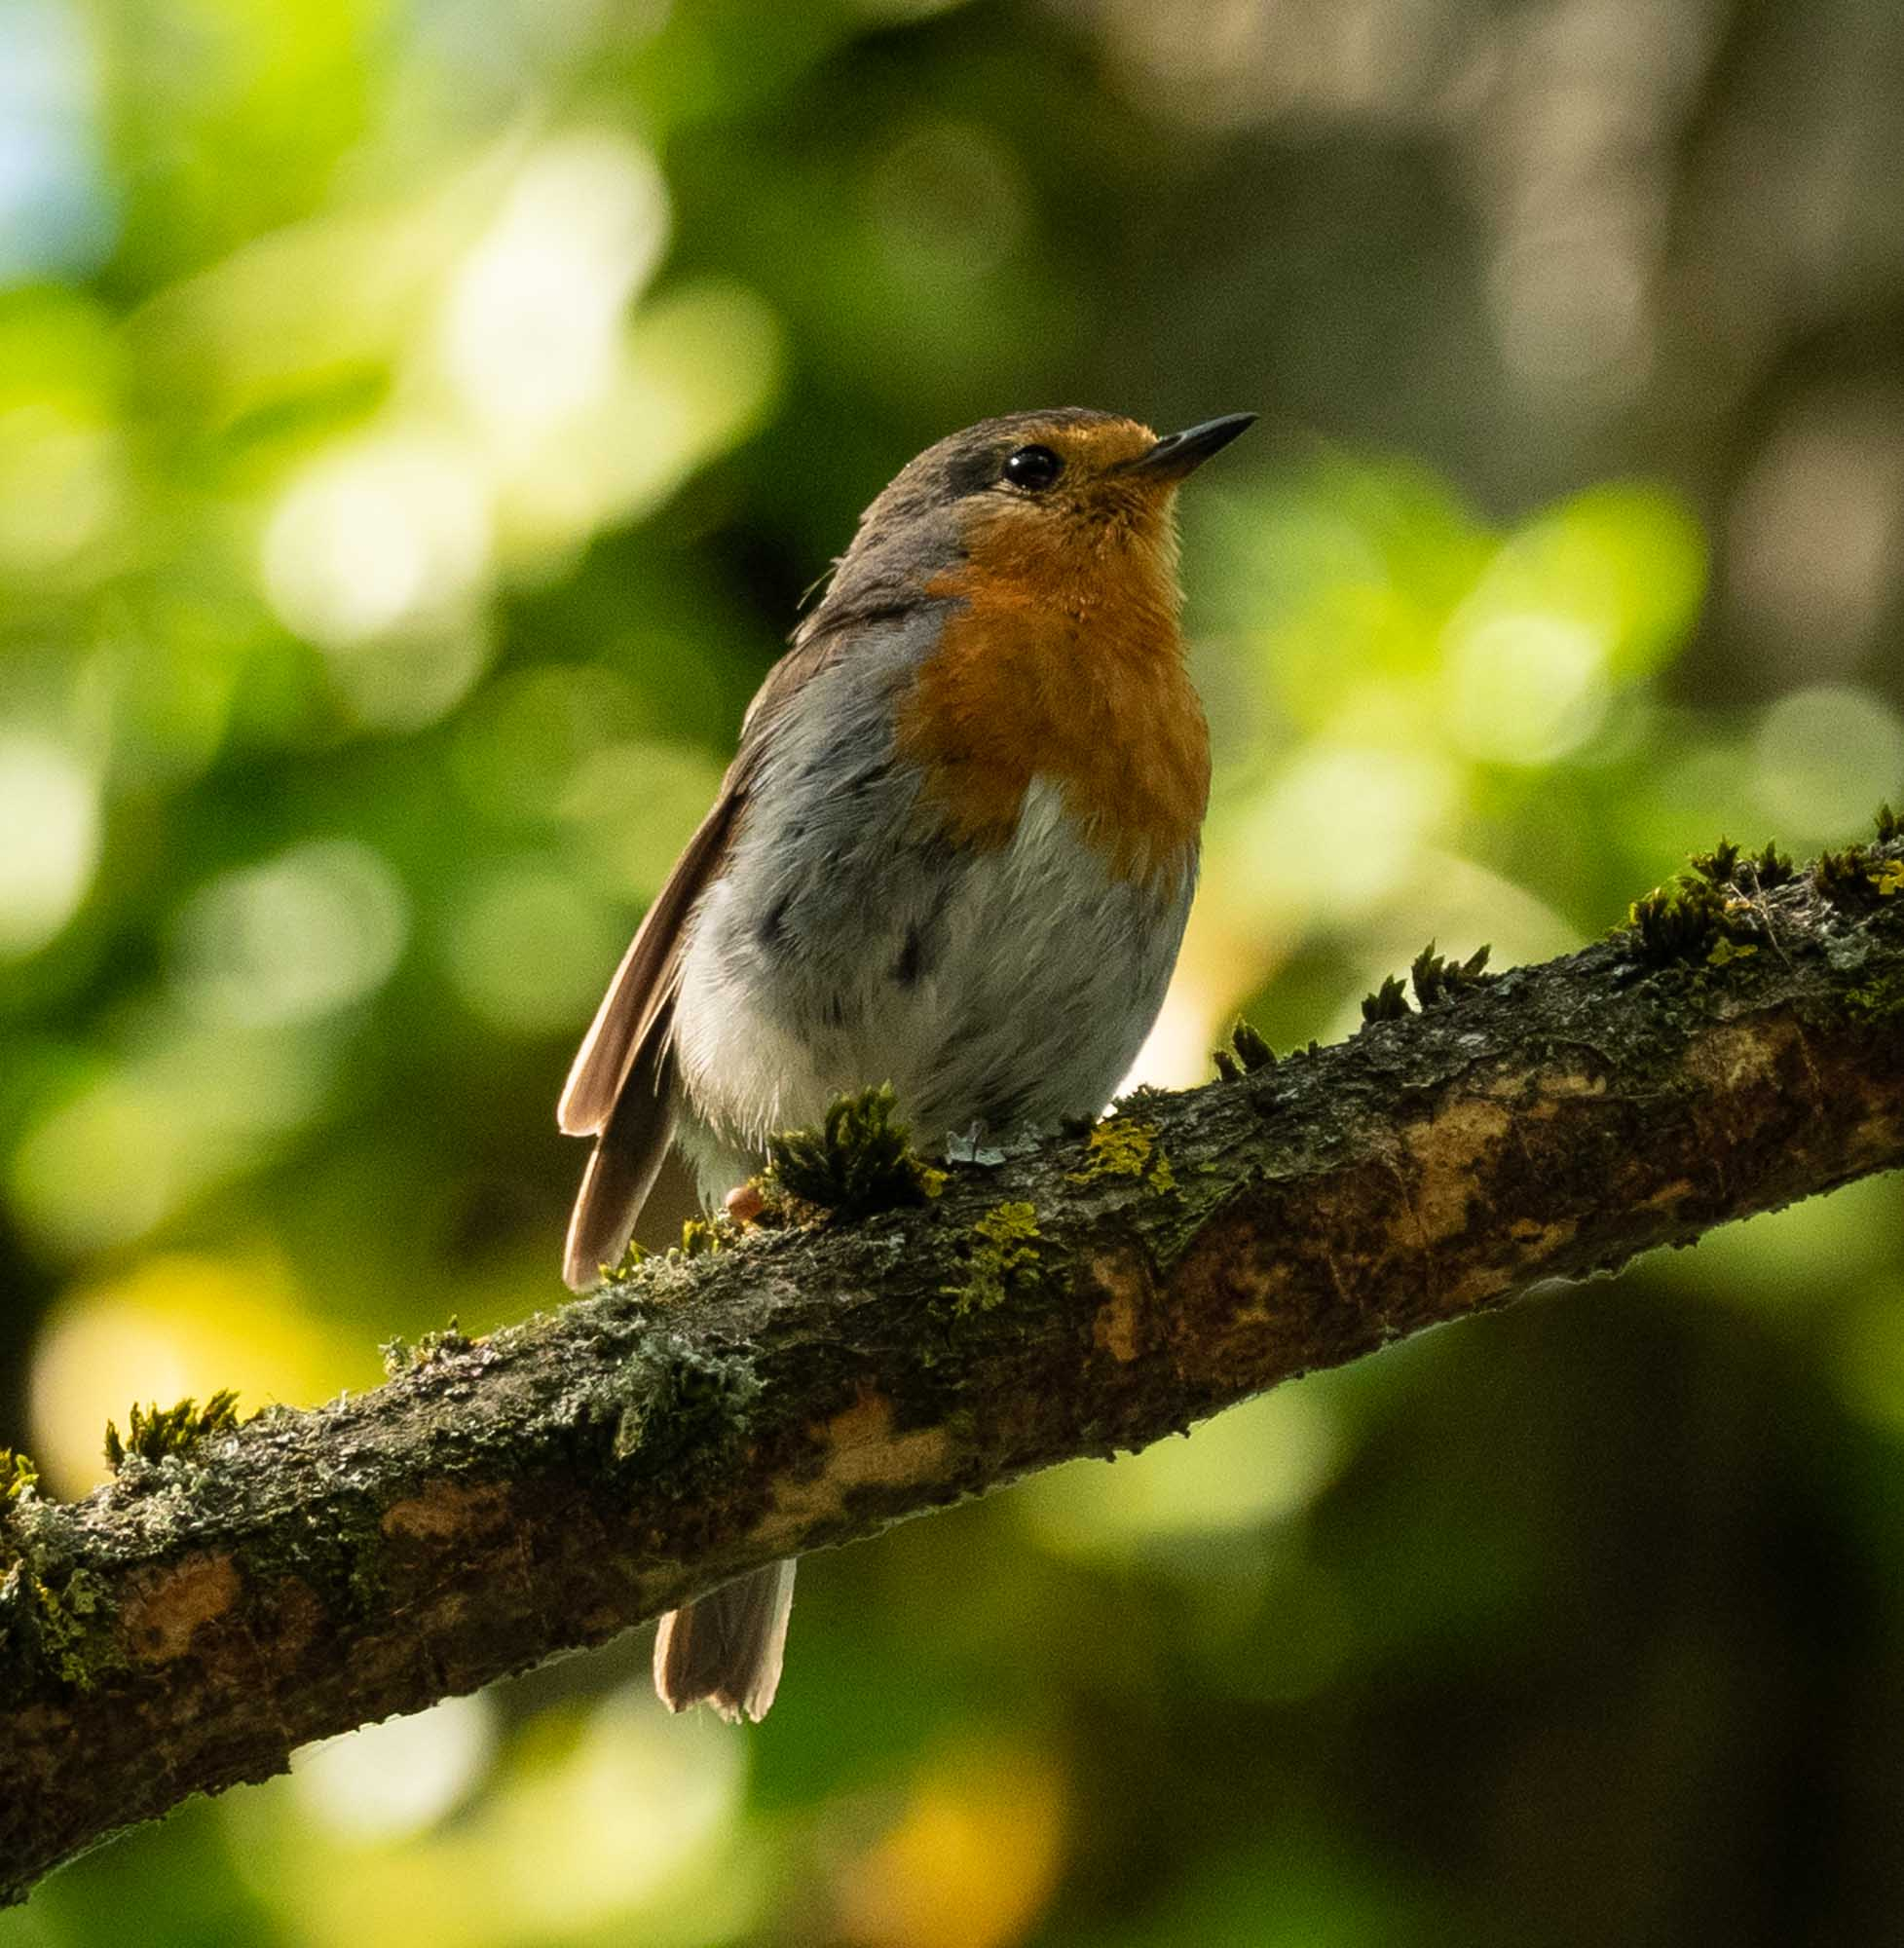 A European Robin (totally unrelated to Australian Robins)